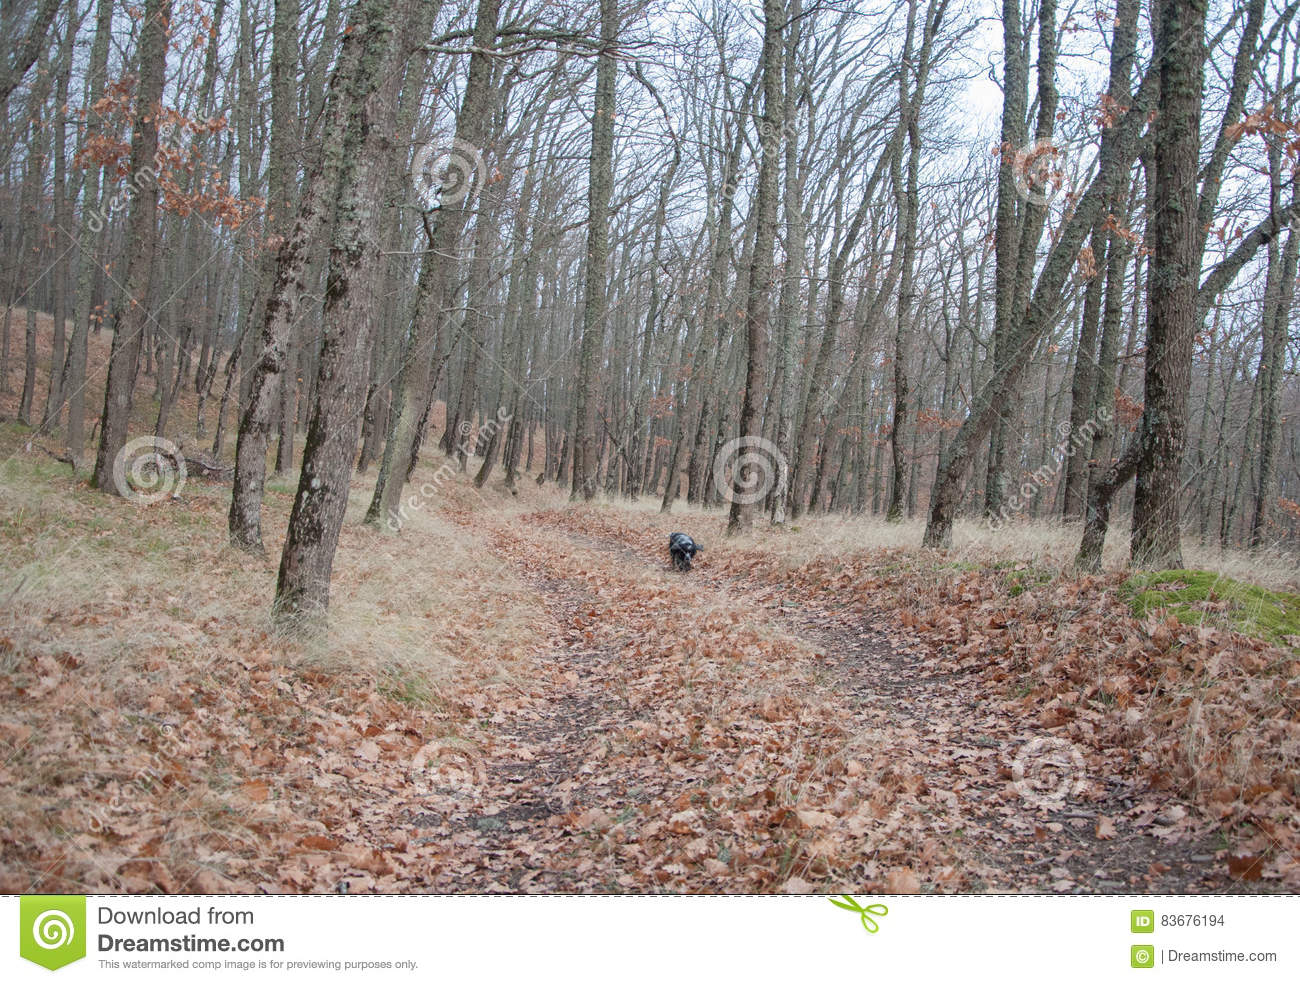 Spaniel hunting dog running in autumn forest